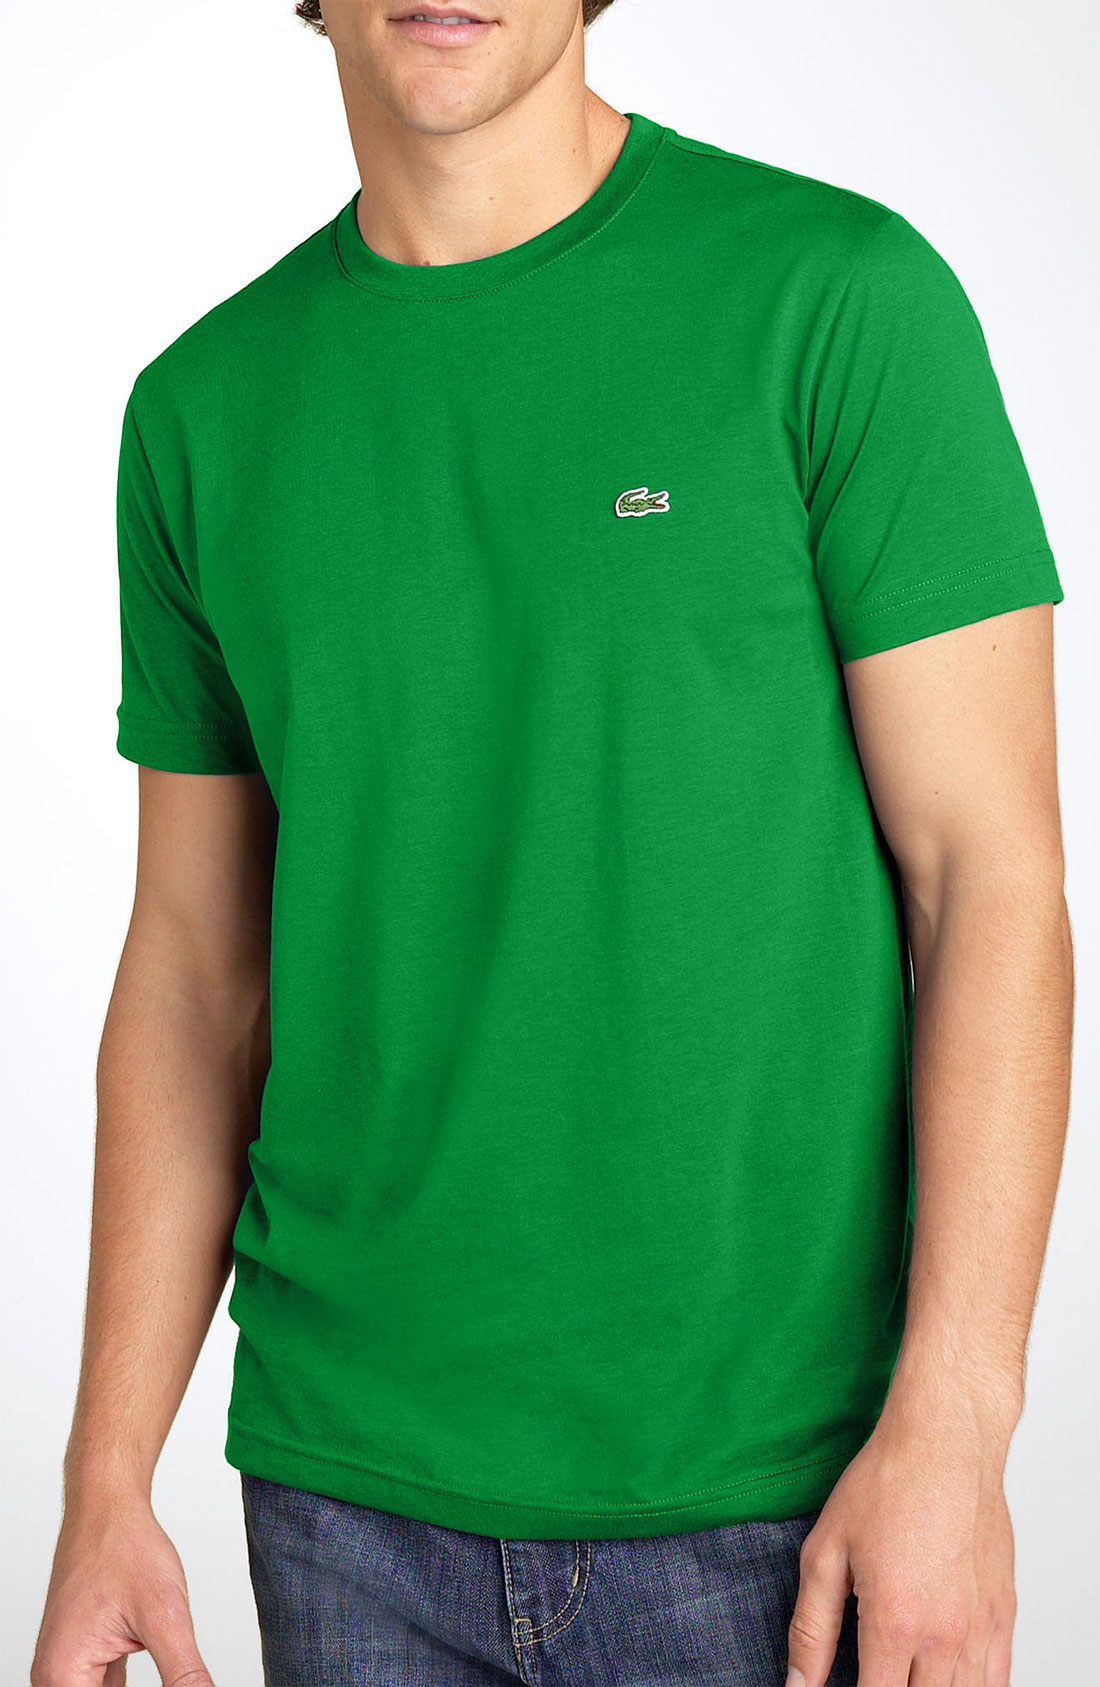 Ralph Lauren Mens Tee Shirts